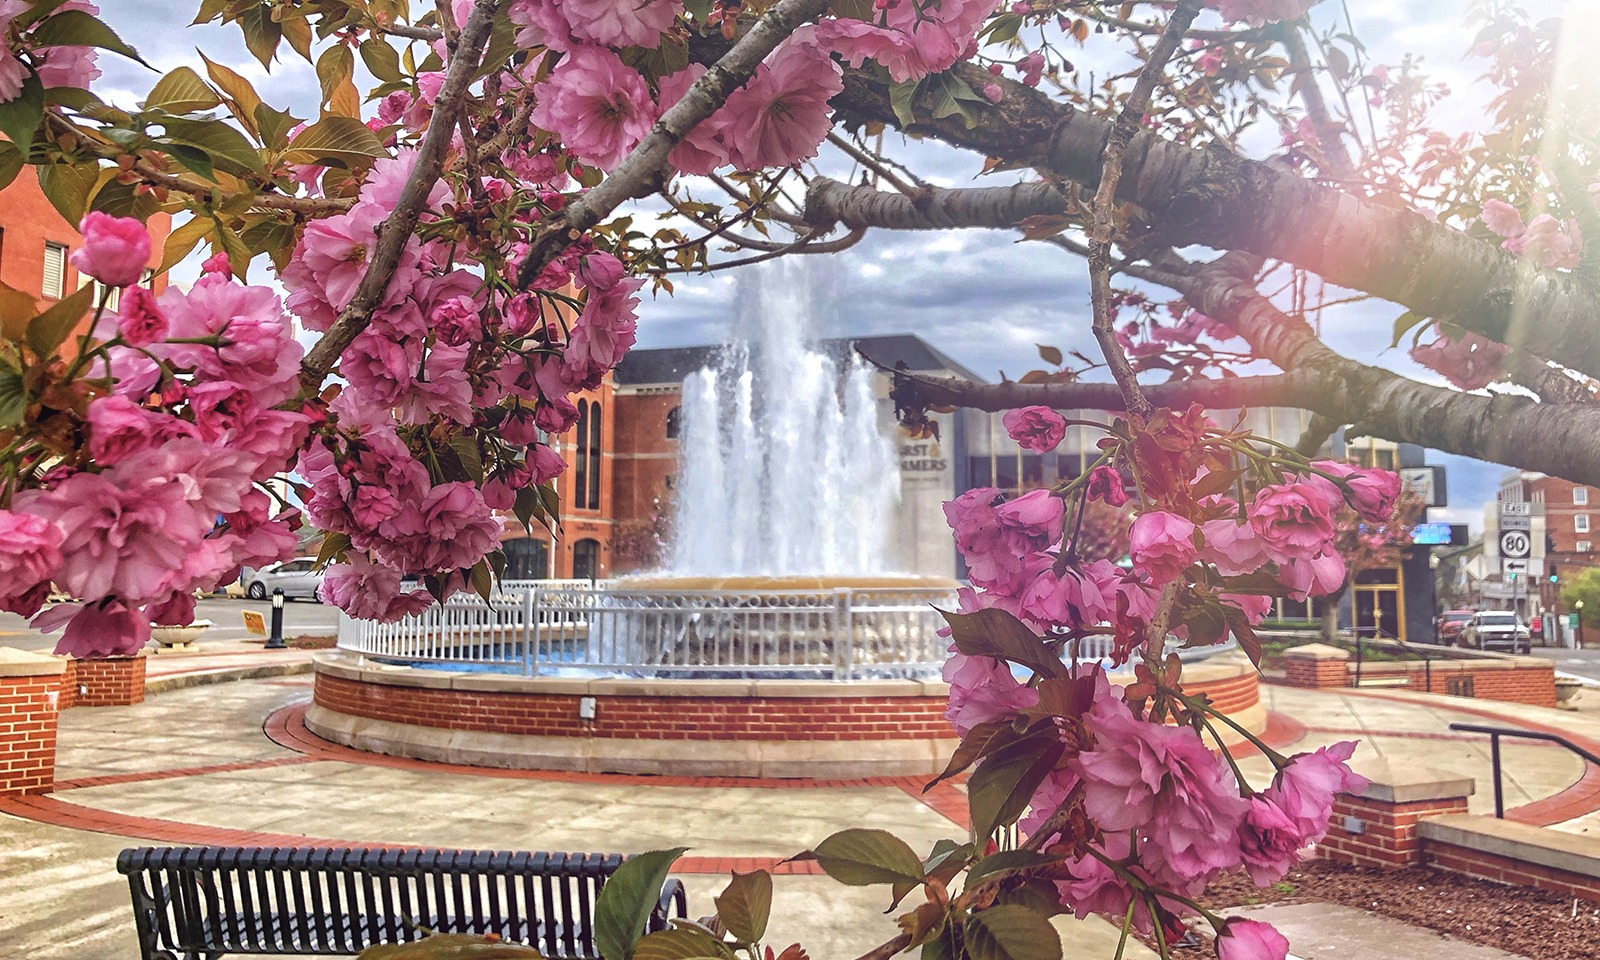 downtown fountain square with cherry trees blooming in foreground